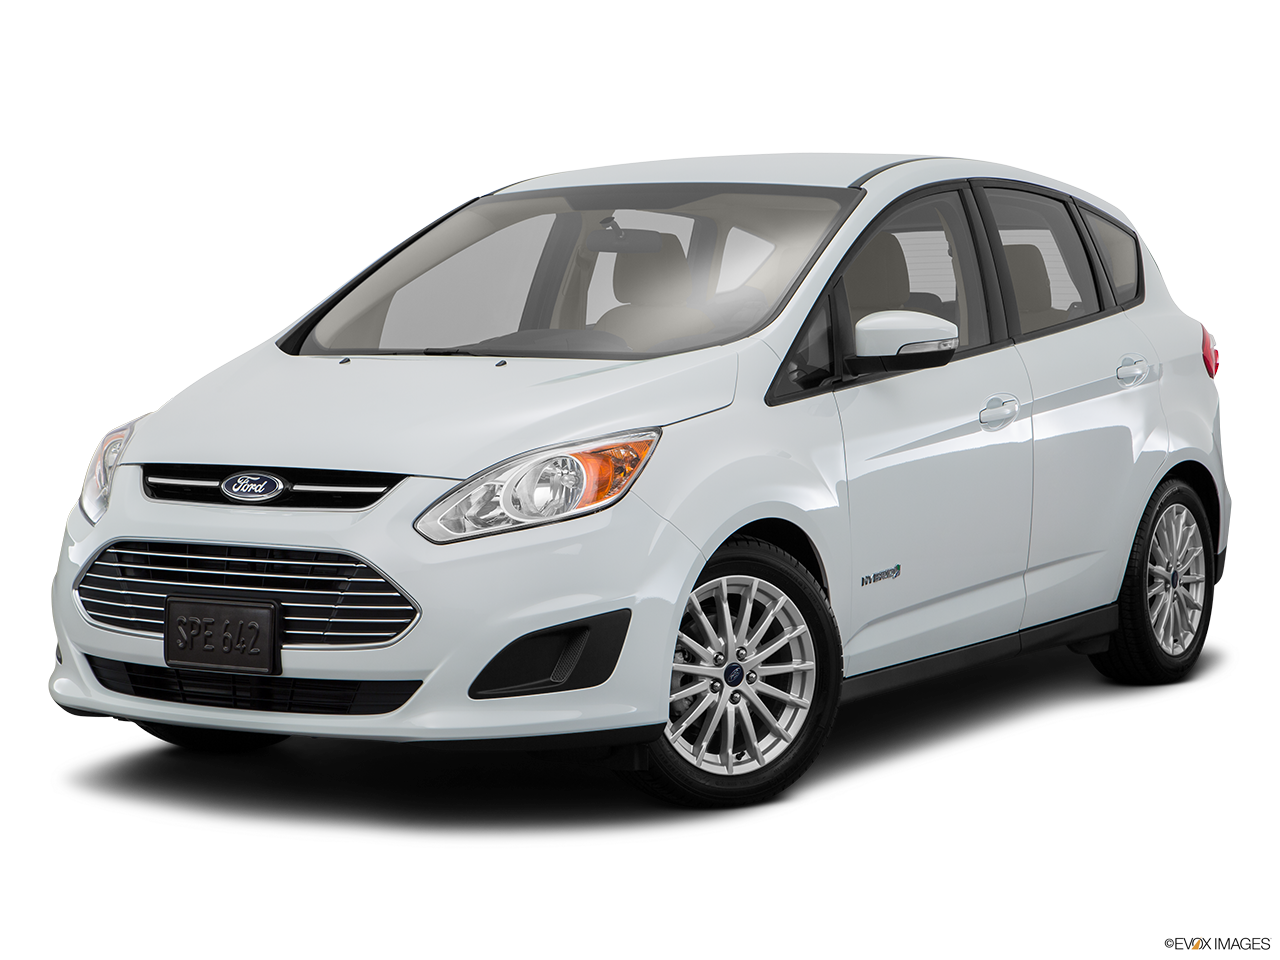 Test Drive A 2016 Ford C-Max at Galpin Ford in Los Angeles